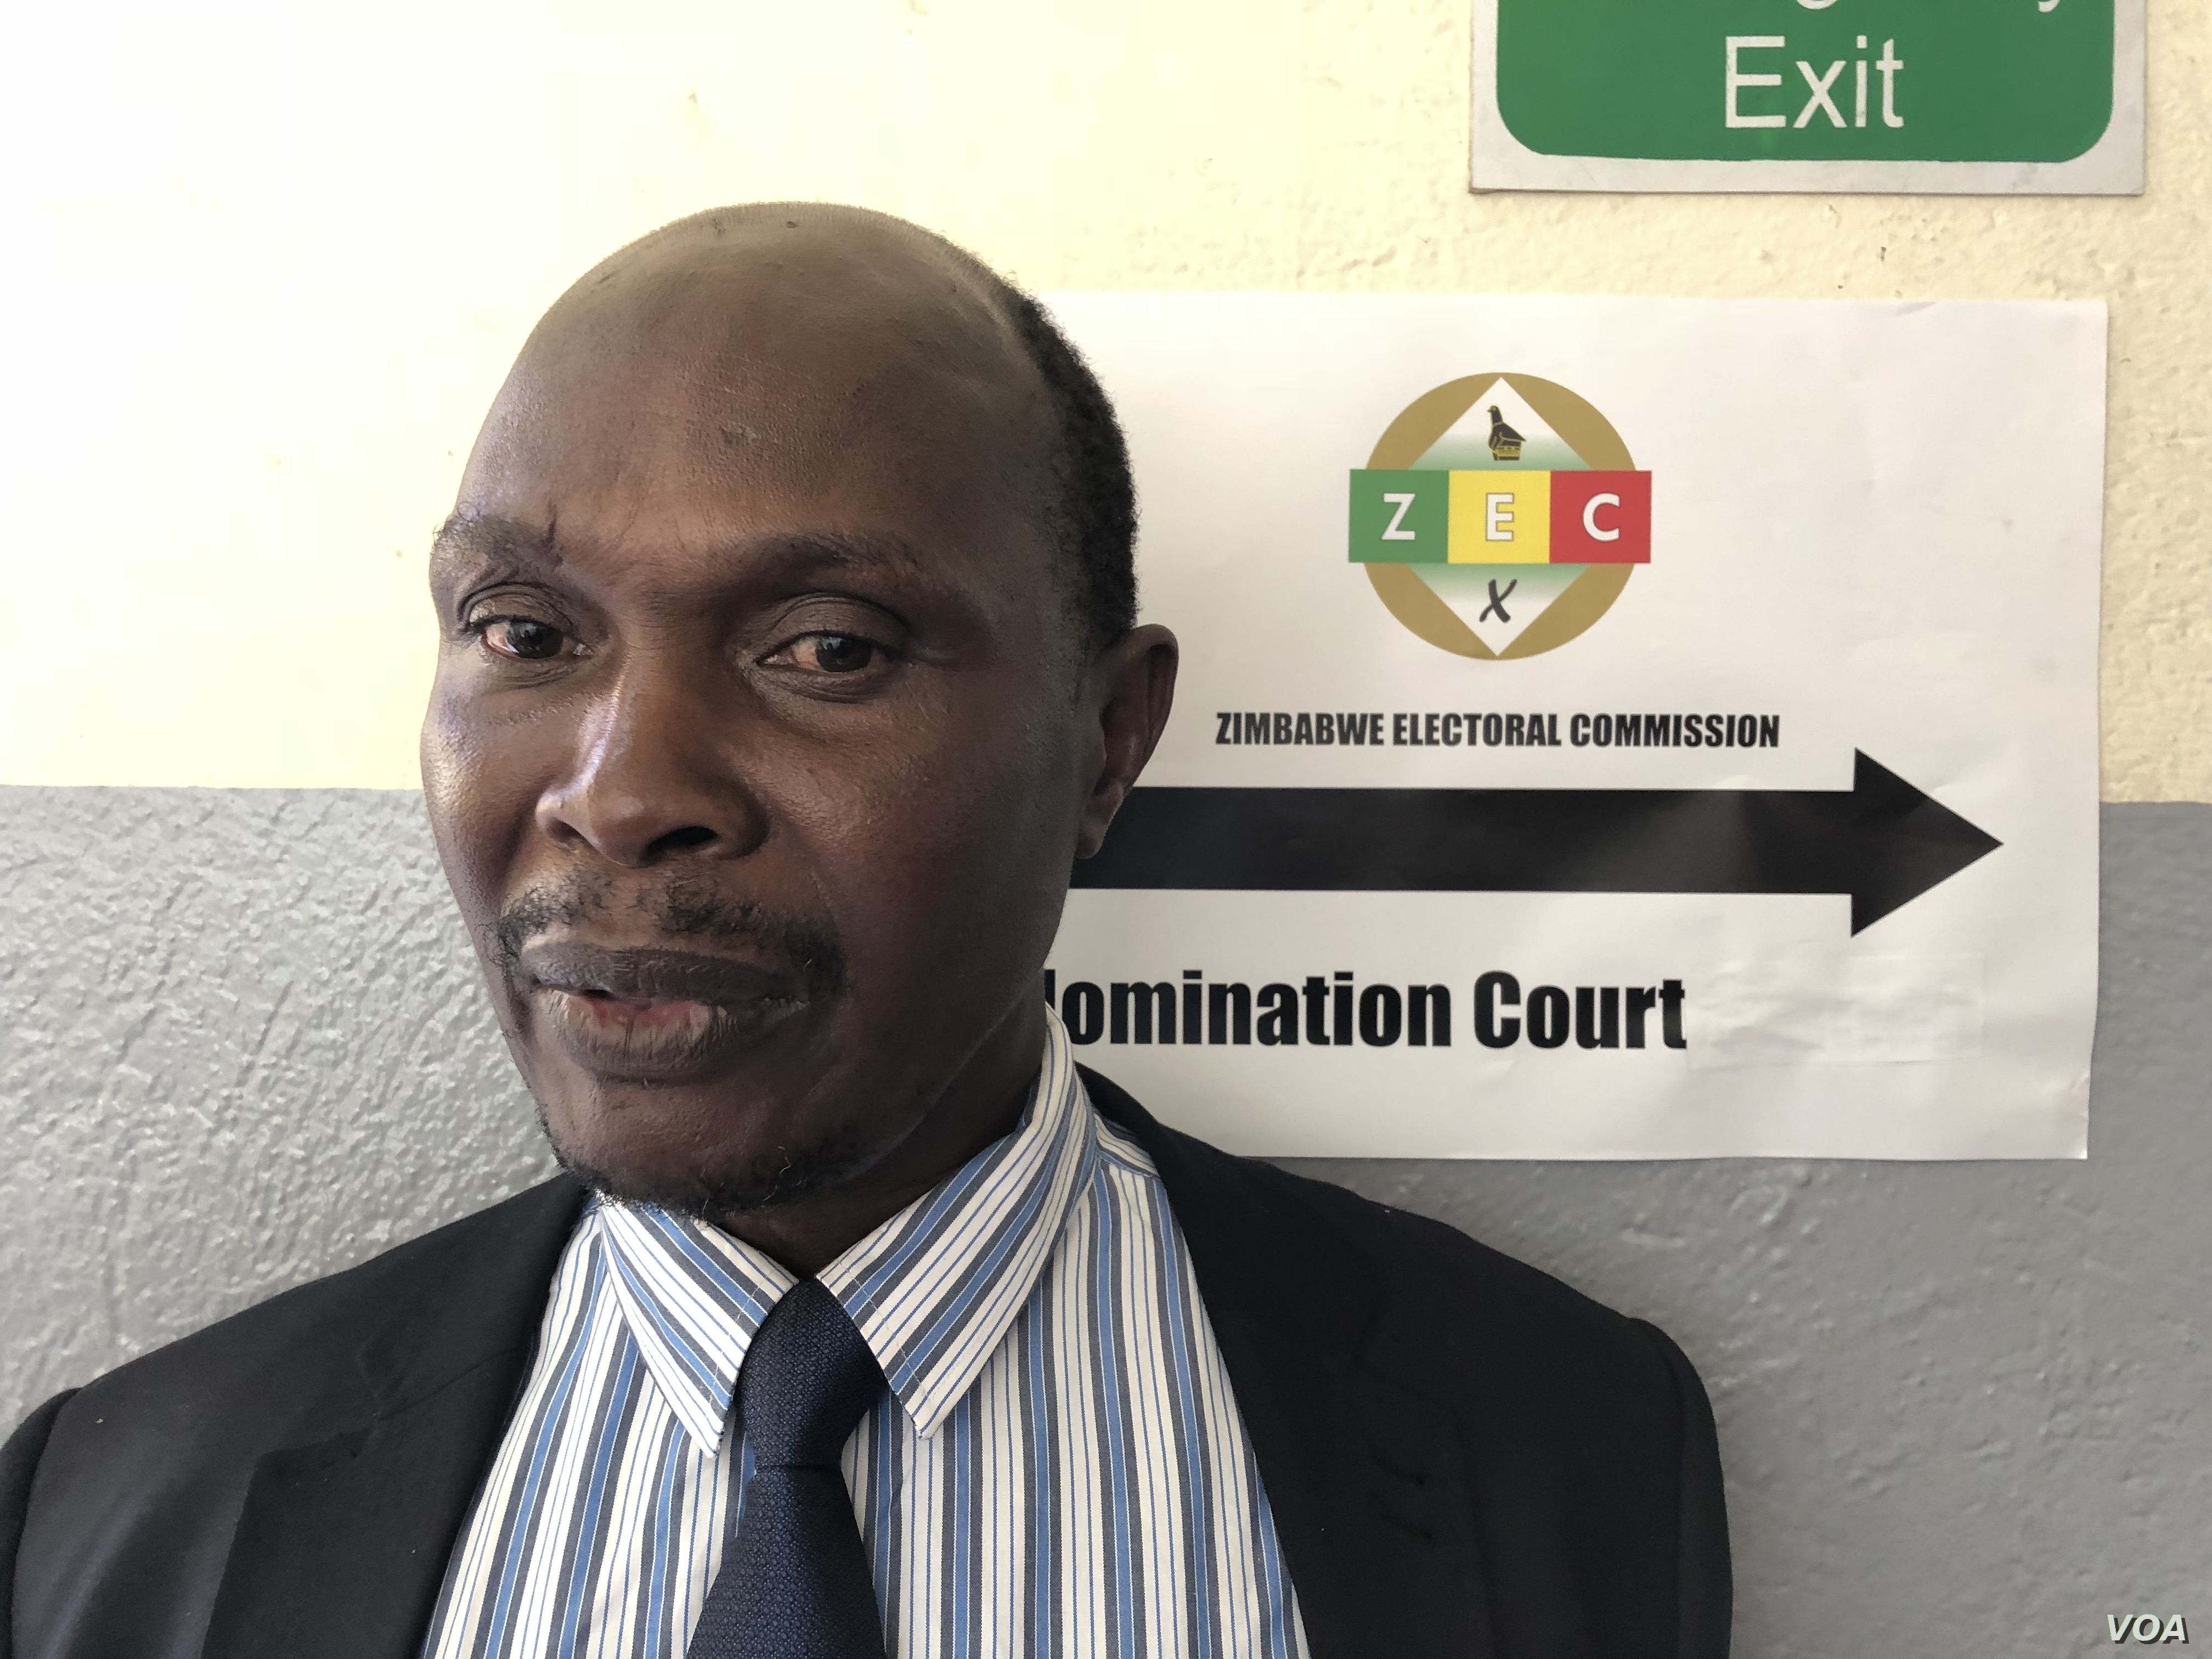 Mapfumo Peter Gava, the head of little known United Democratic Front, failed to register for the July 30 general election and said Zimbabwe Election Commission's refusal to give him the voter rolls made him unable to get enough nominees to support ...